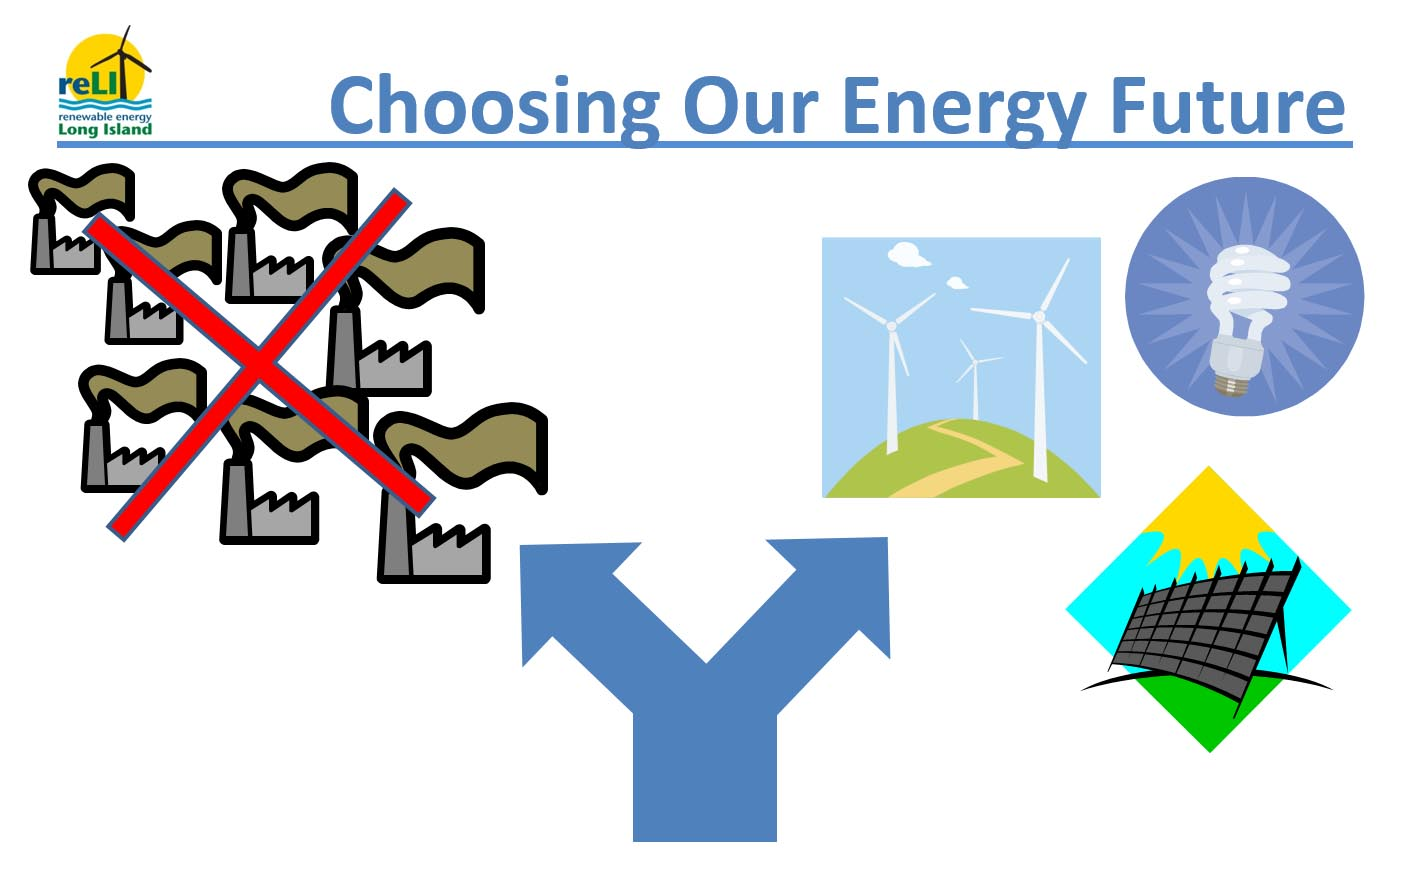 ChoosingOur_Energy_Future.jpg